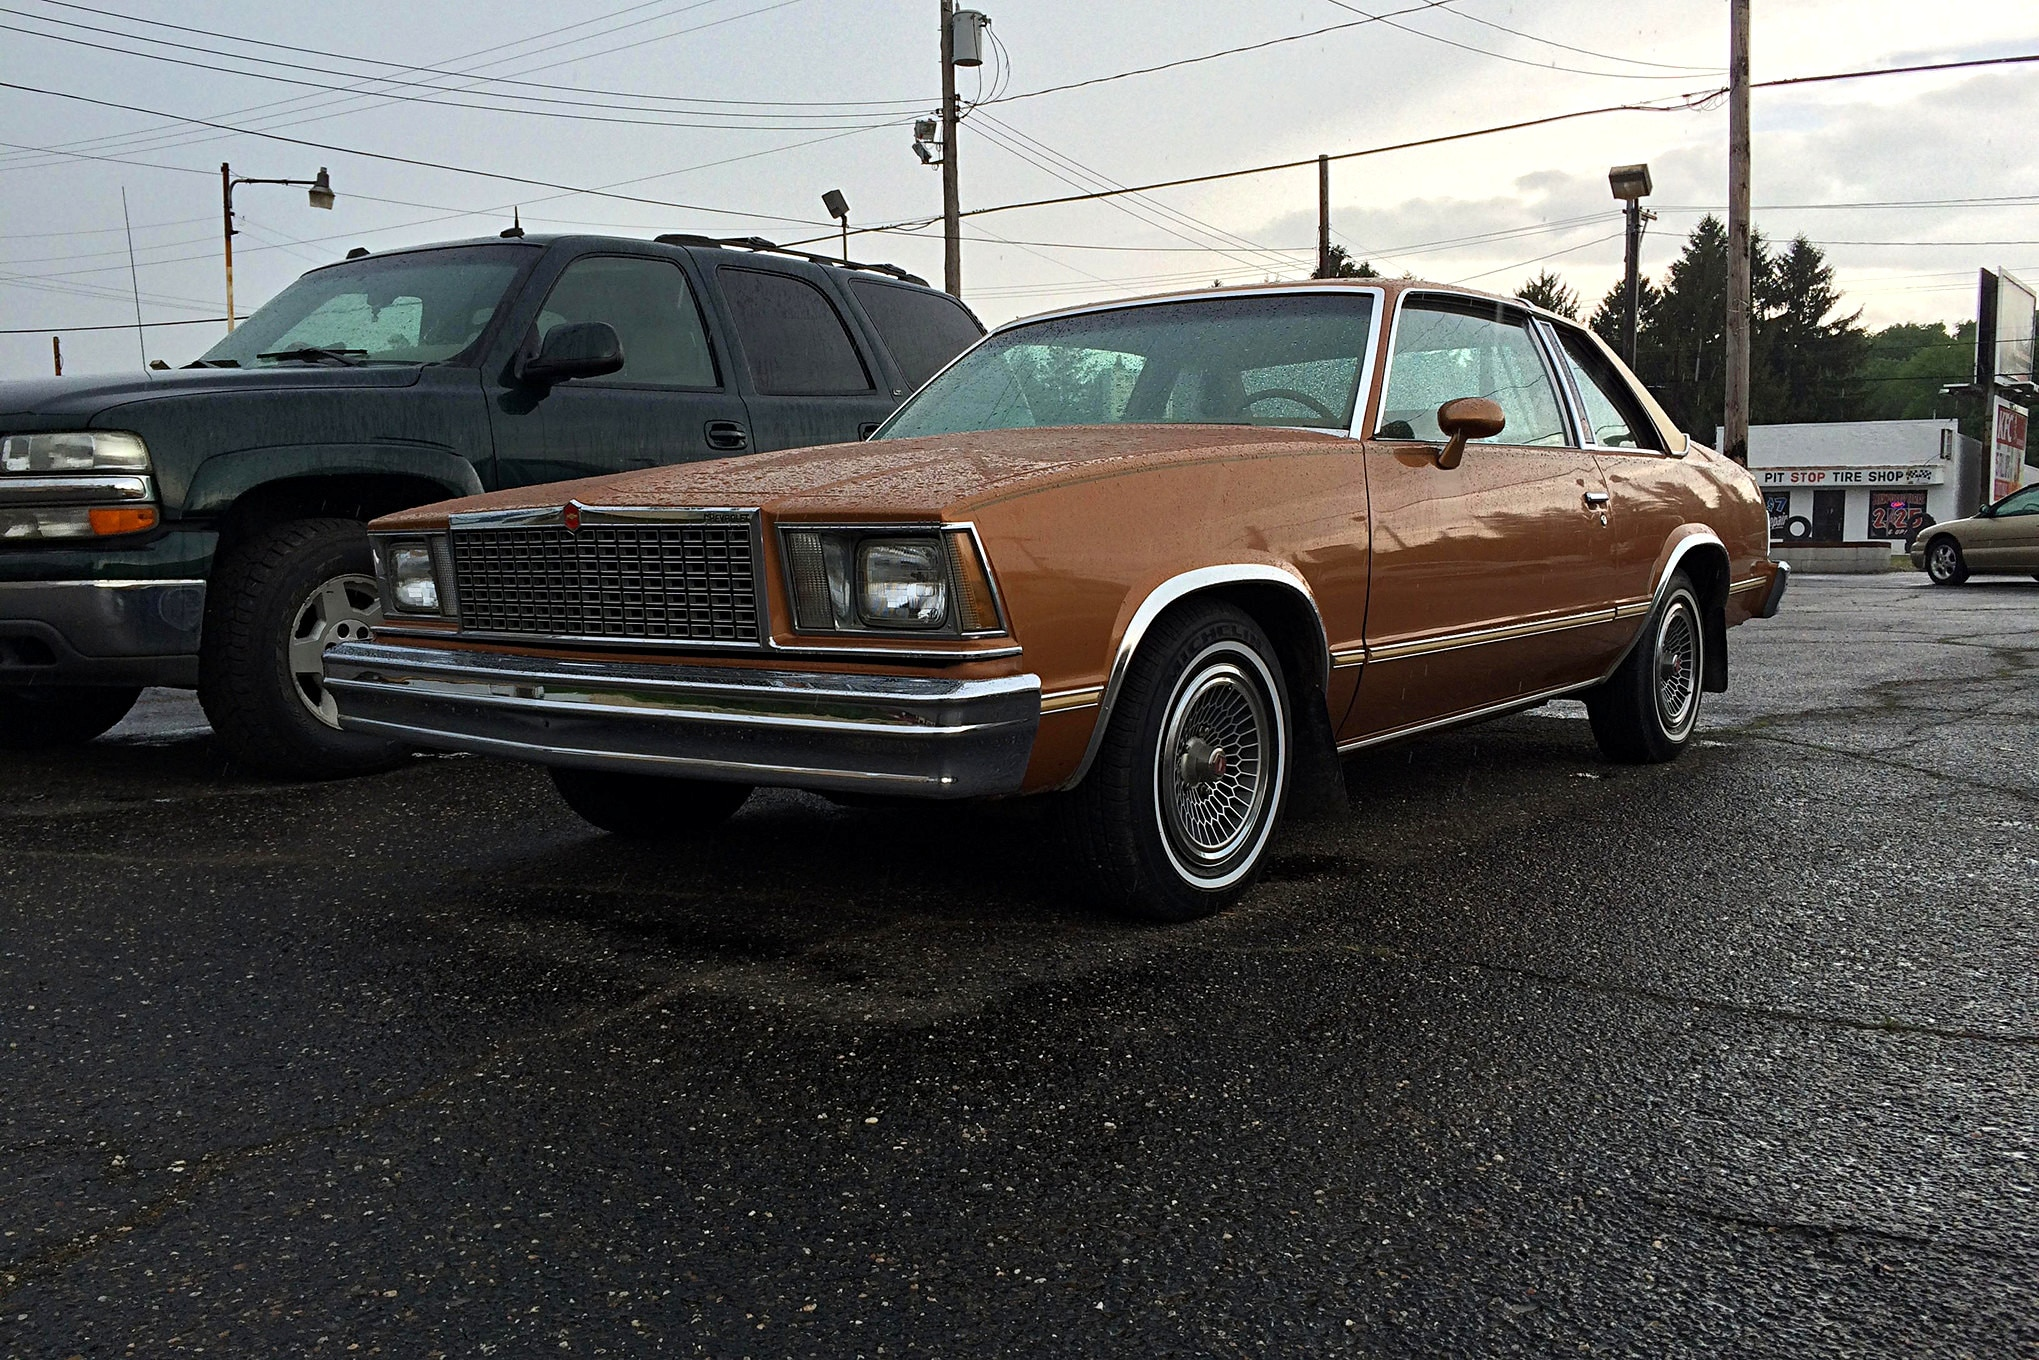 Car Craft's newest project car, the 1978 Malibu we spotted on the lot at K.O. Motors in Akron, Ohio.